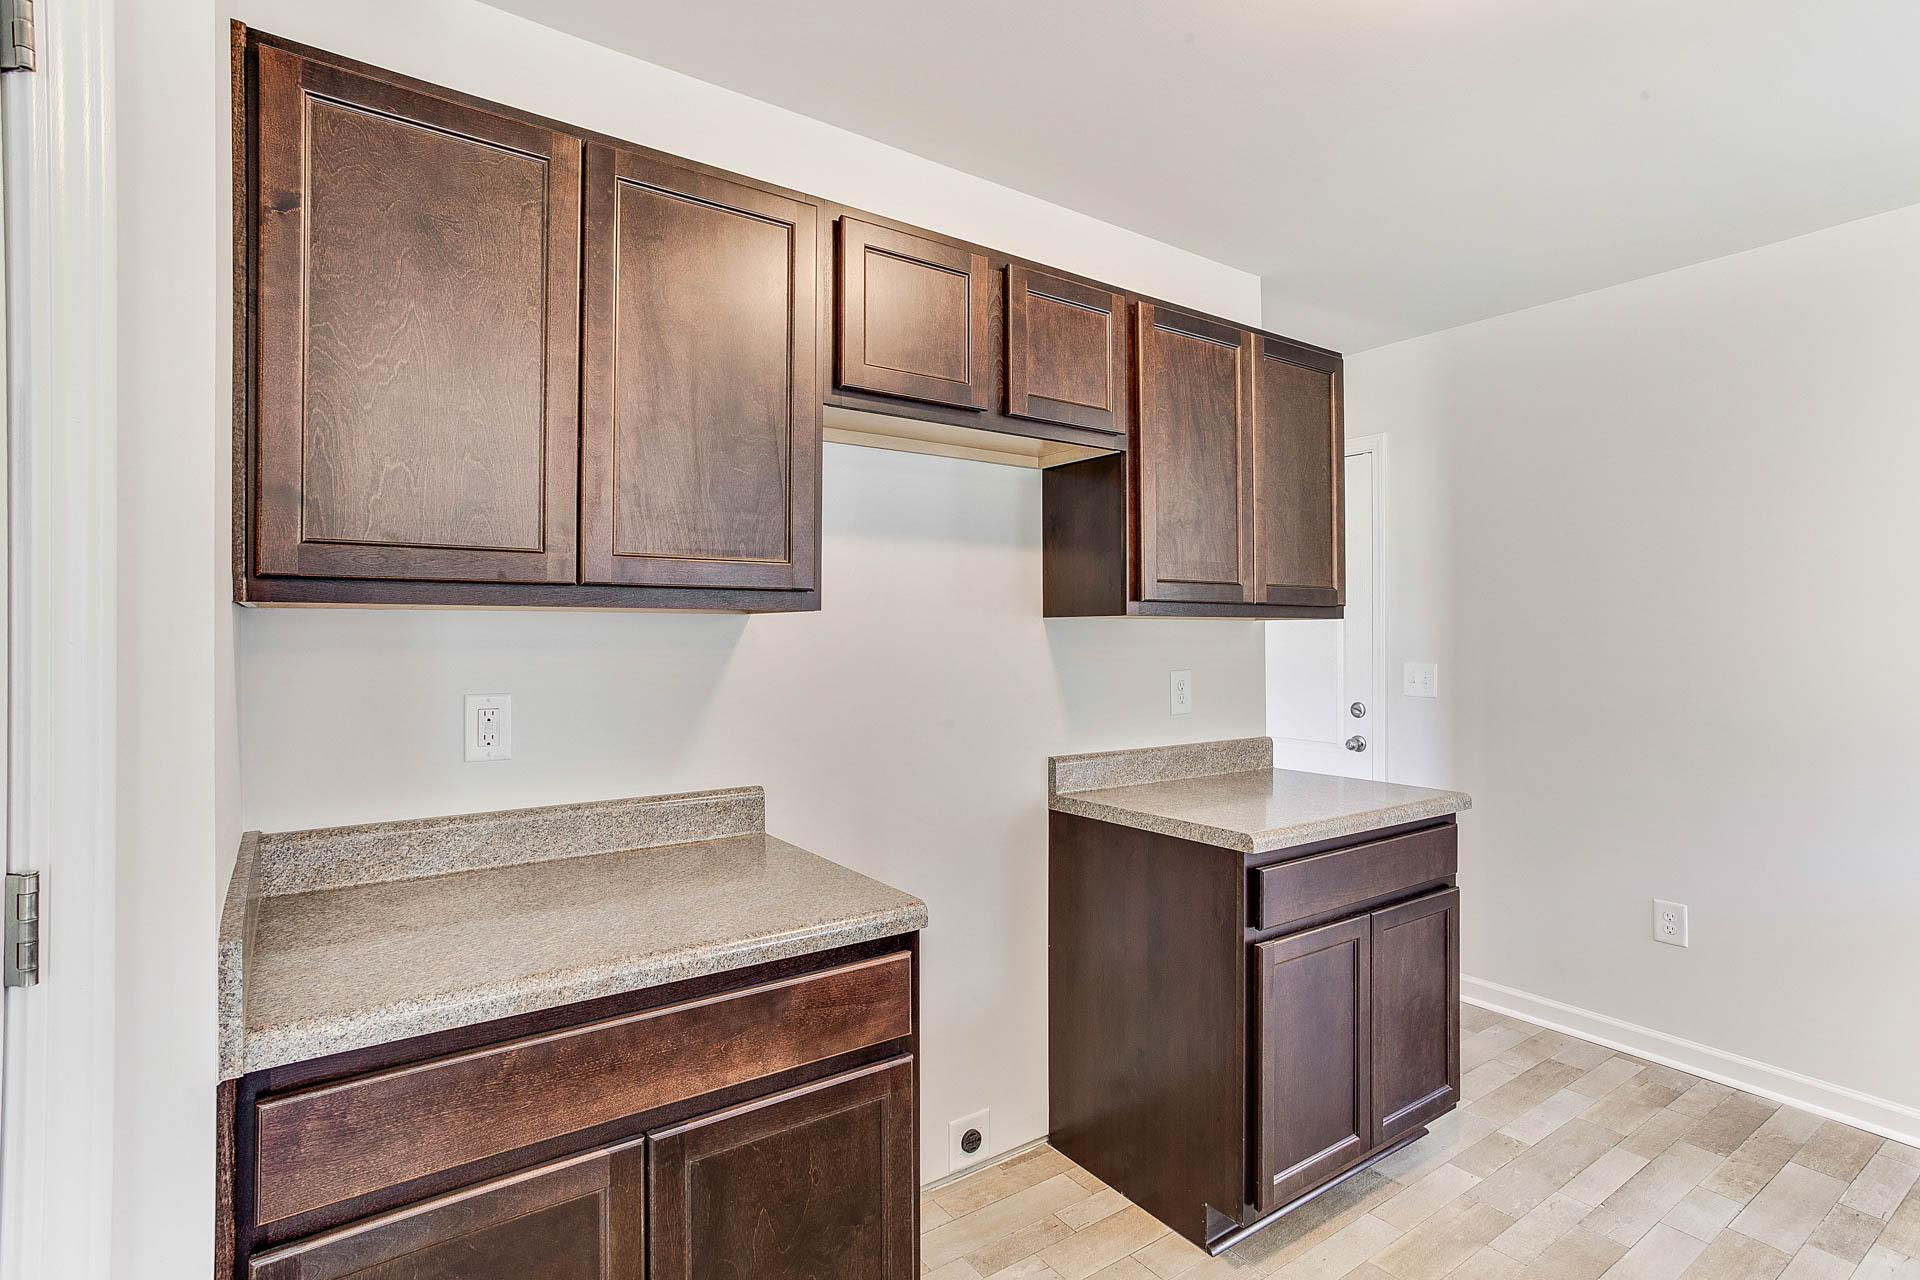 Kitchen featured in the Engage By HH Homes in Fayetteville, NC